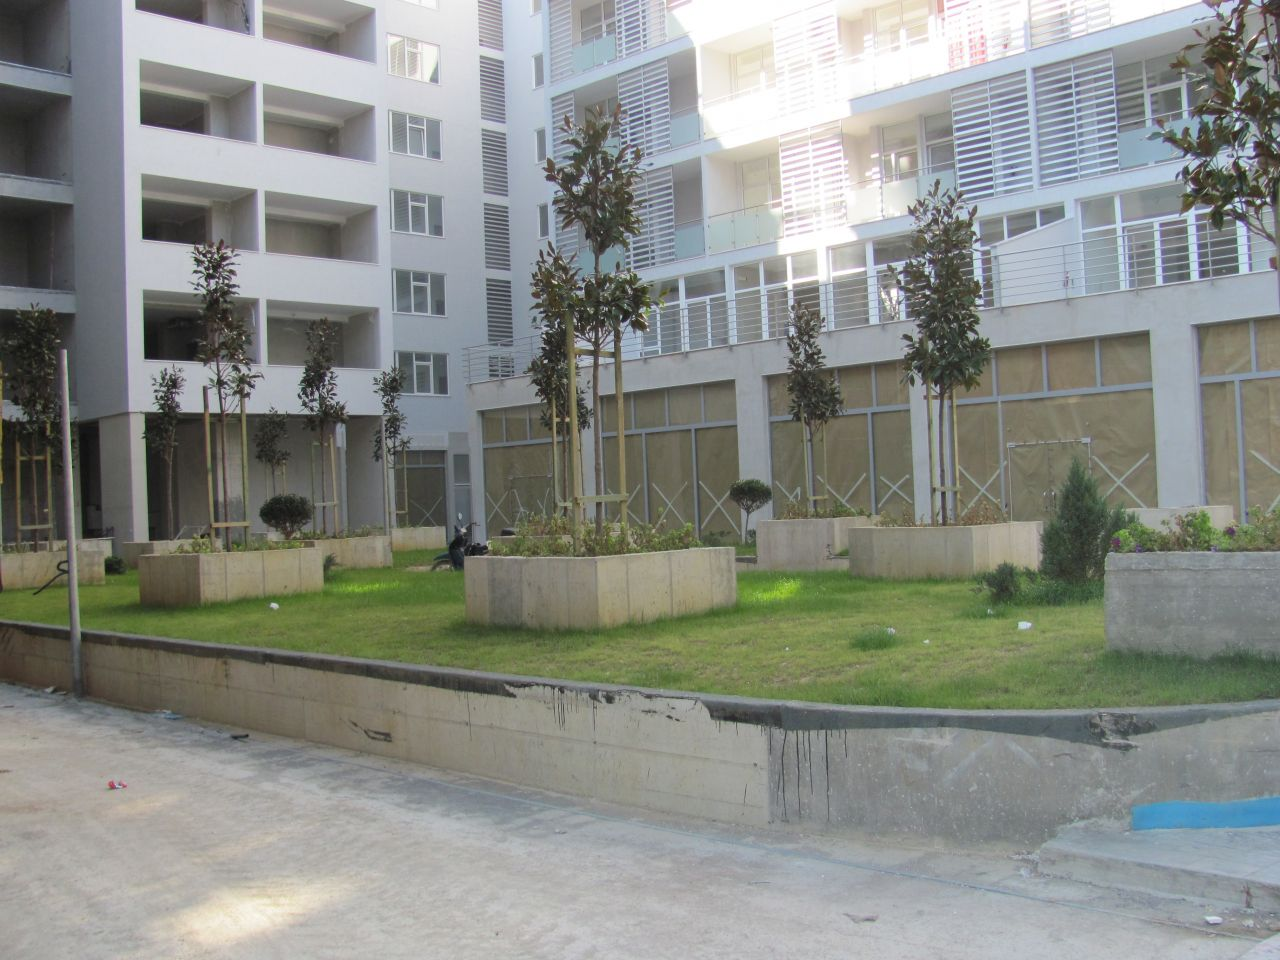 Albania Real Estate in Tirane. Apartments for Sale in Tirane